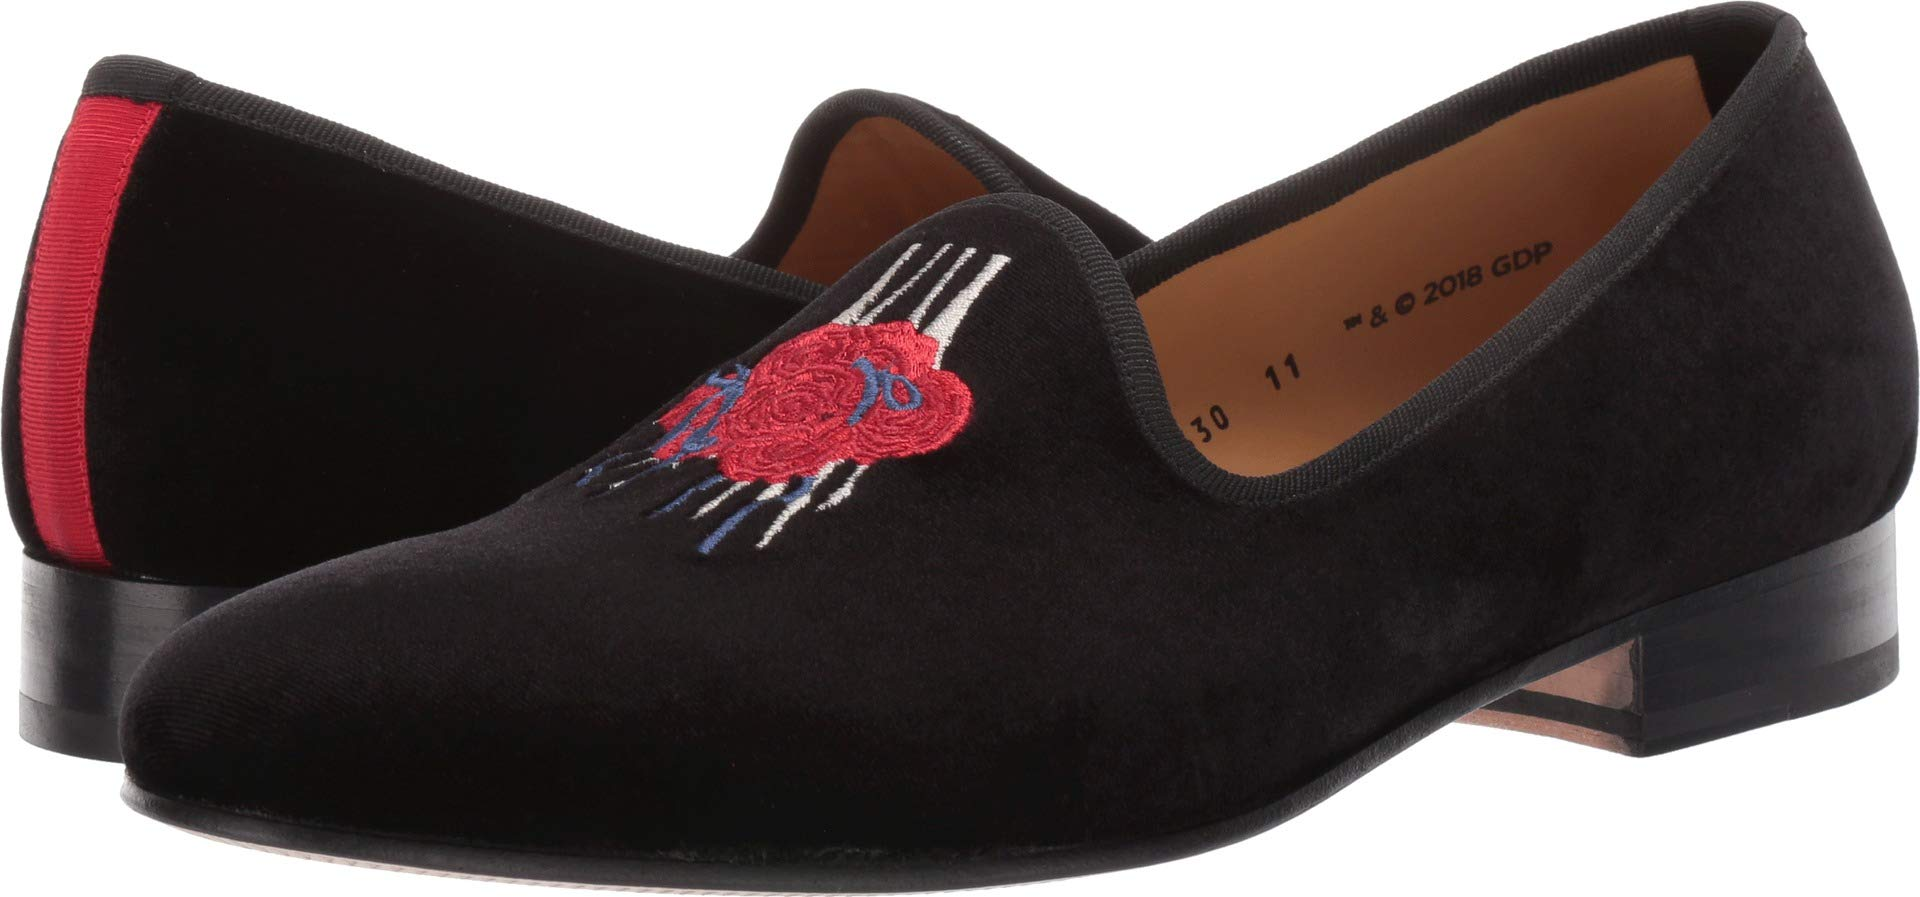 Del Toro Men's Wake Up to Find Out Slipper Black Velvet 9 M US